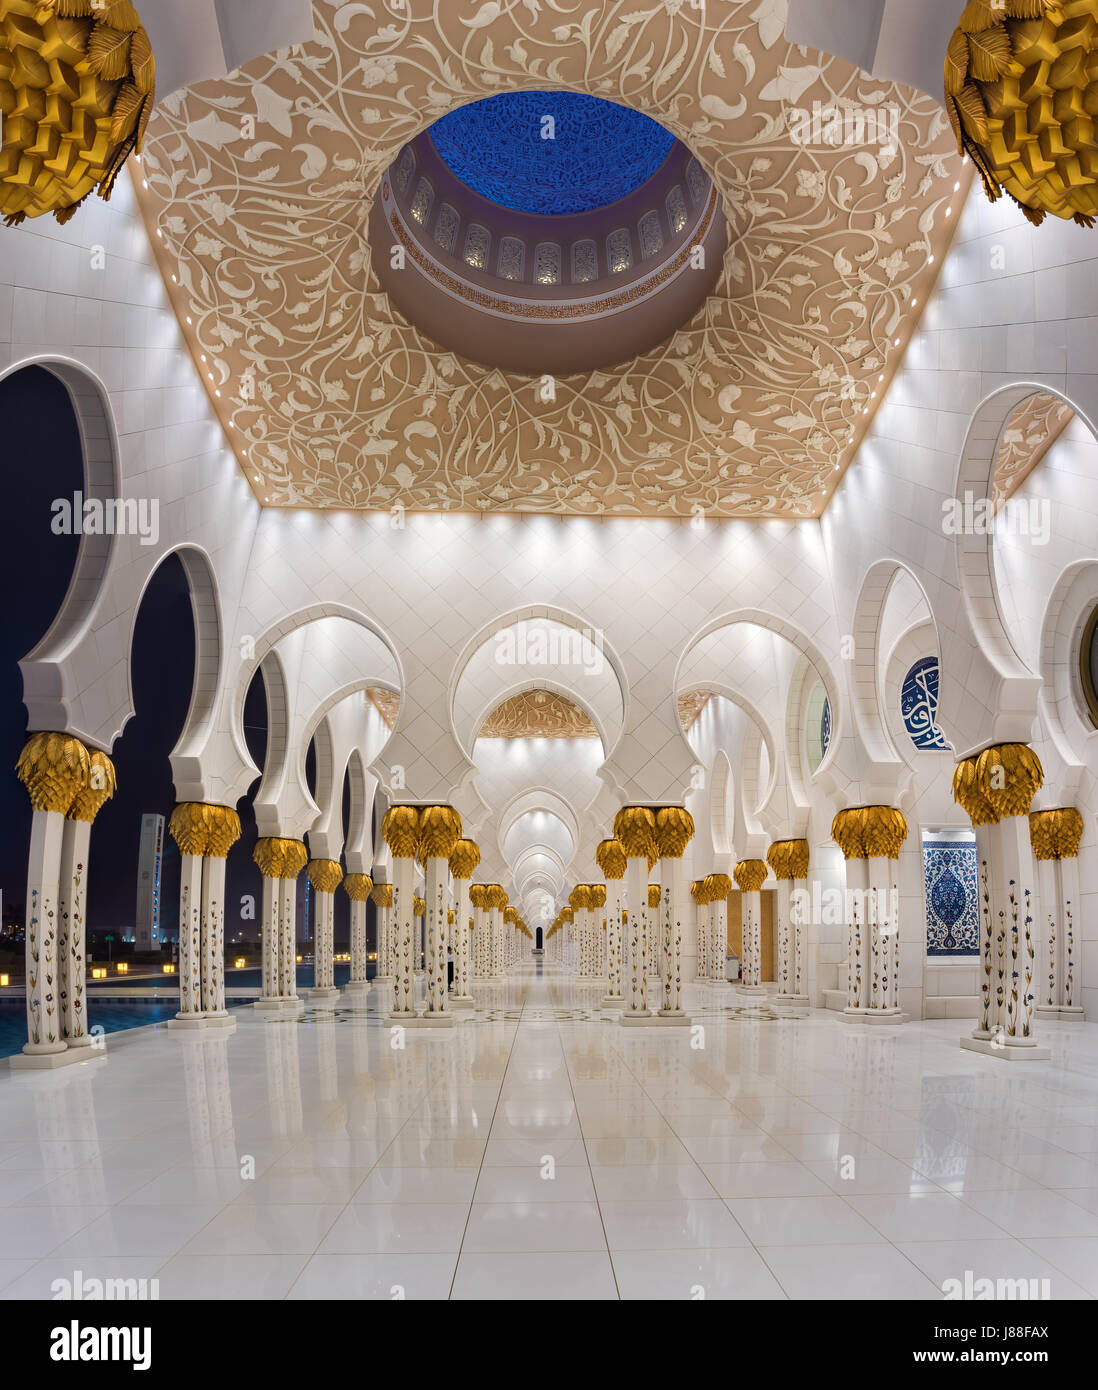 Sheikh Zayed Mosque the 3rd largest mosque in the world - Stock Image